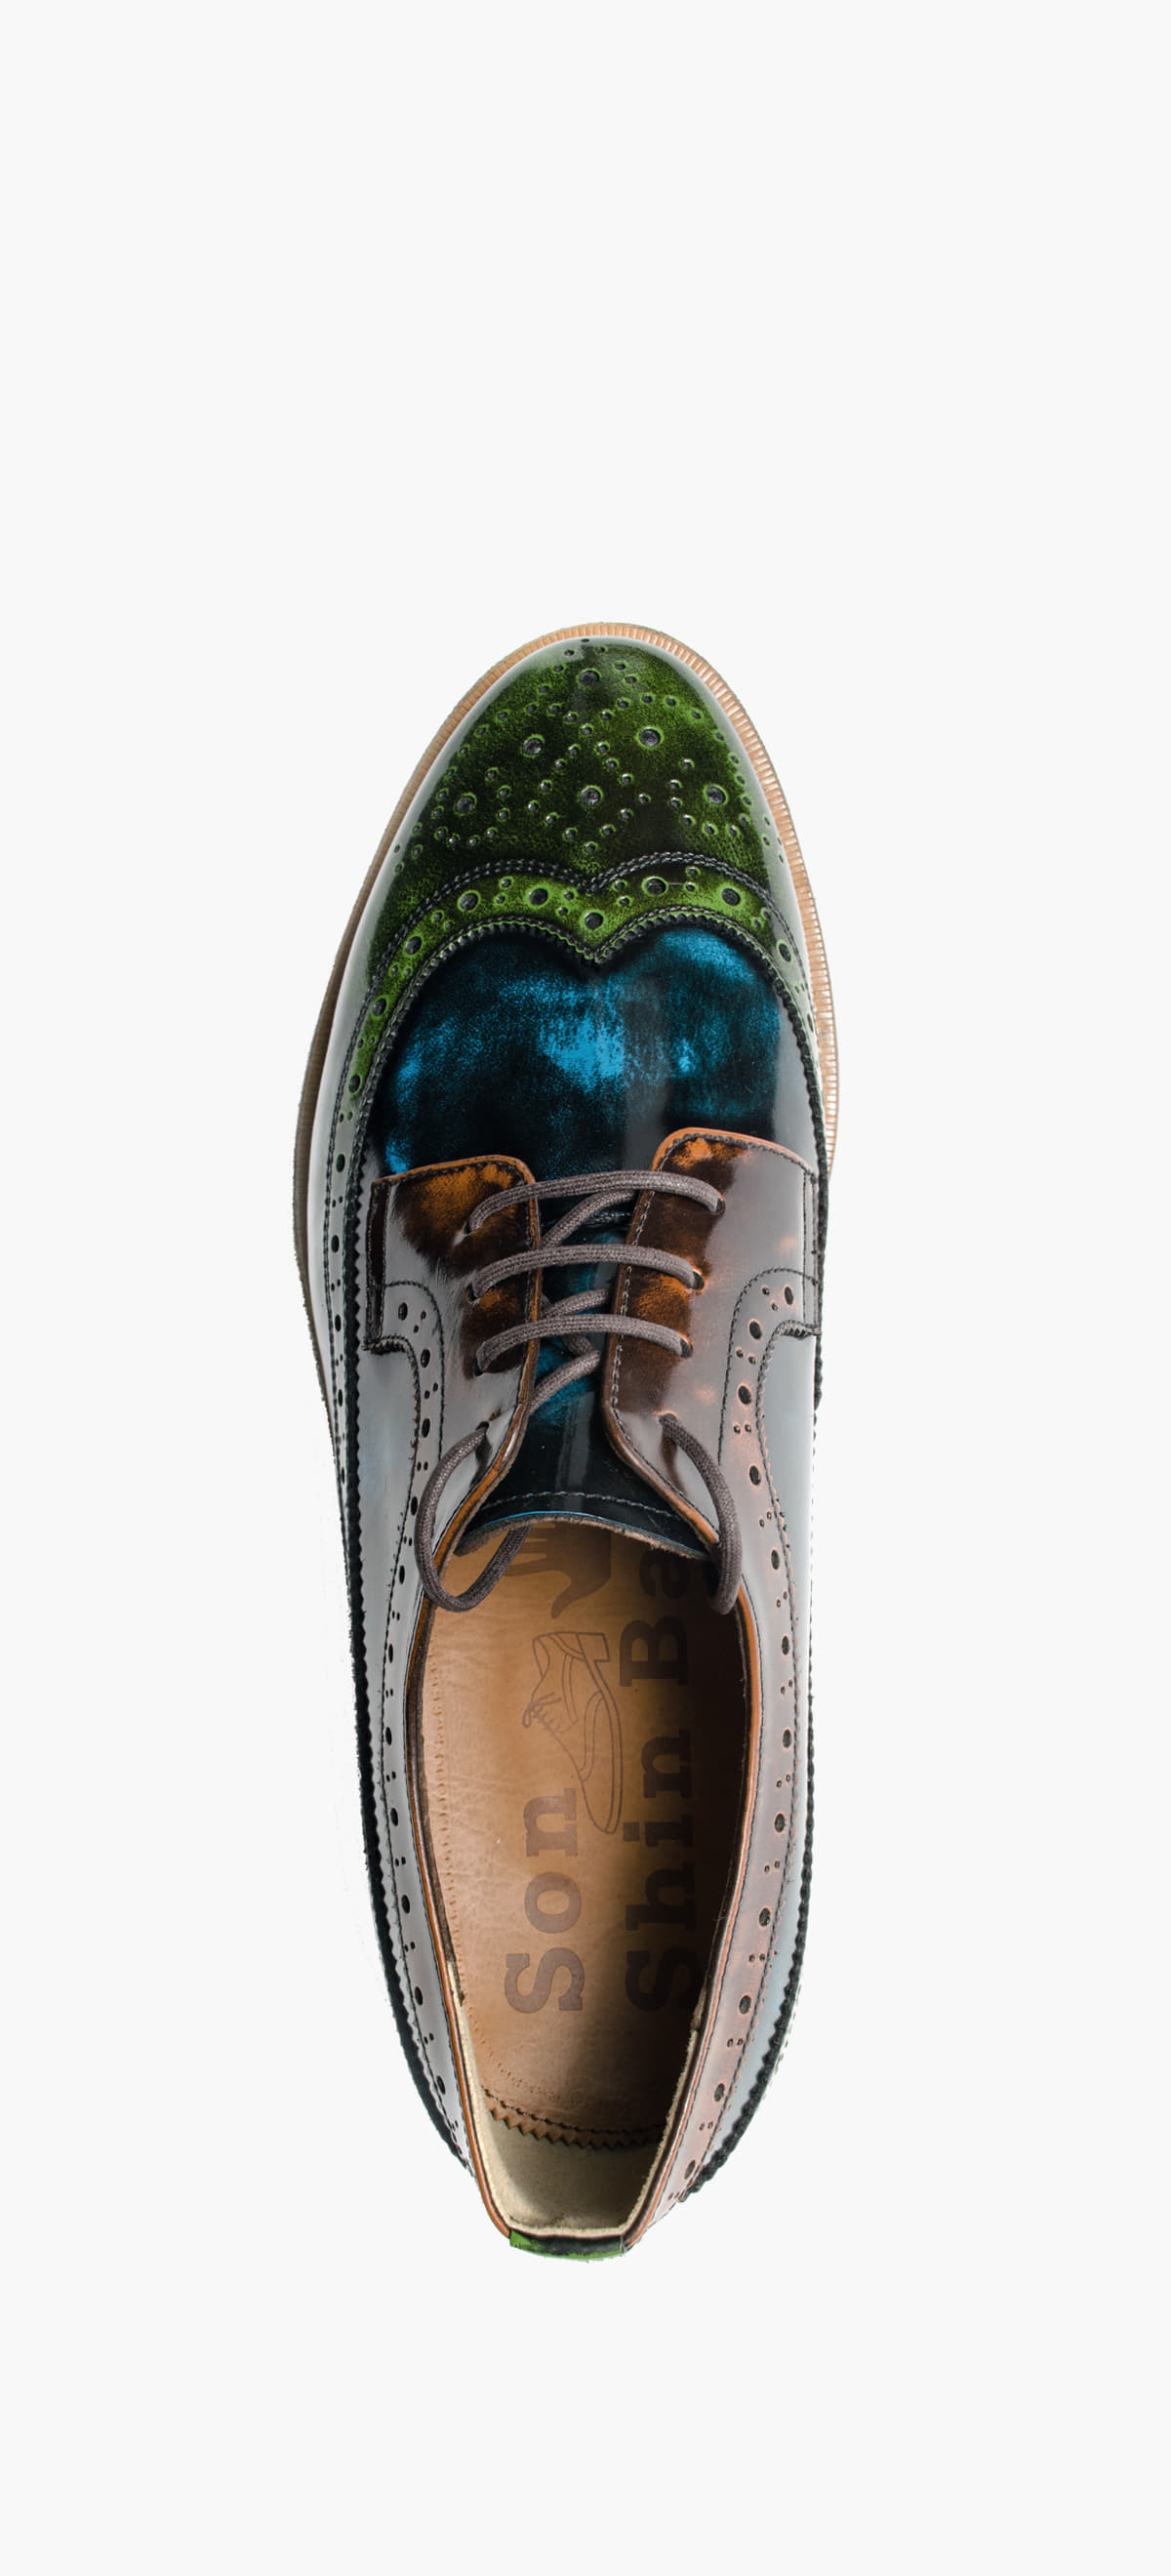 Wing Tip 0027-29 Light Green Combination